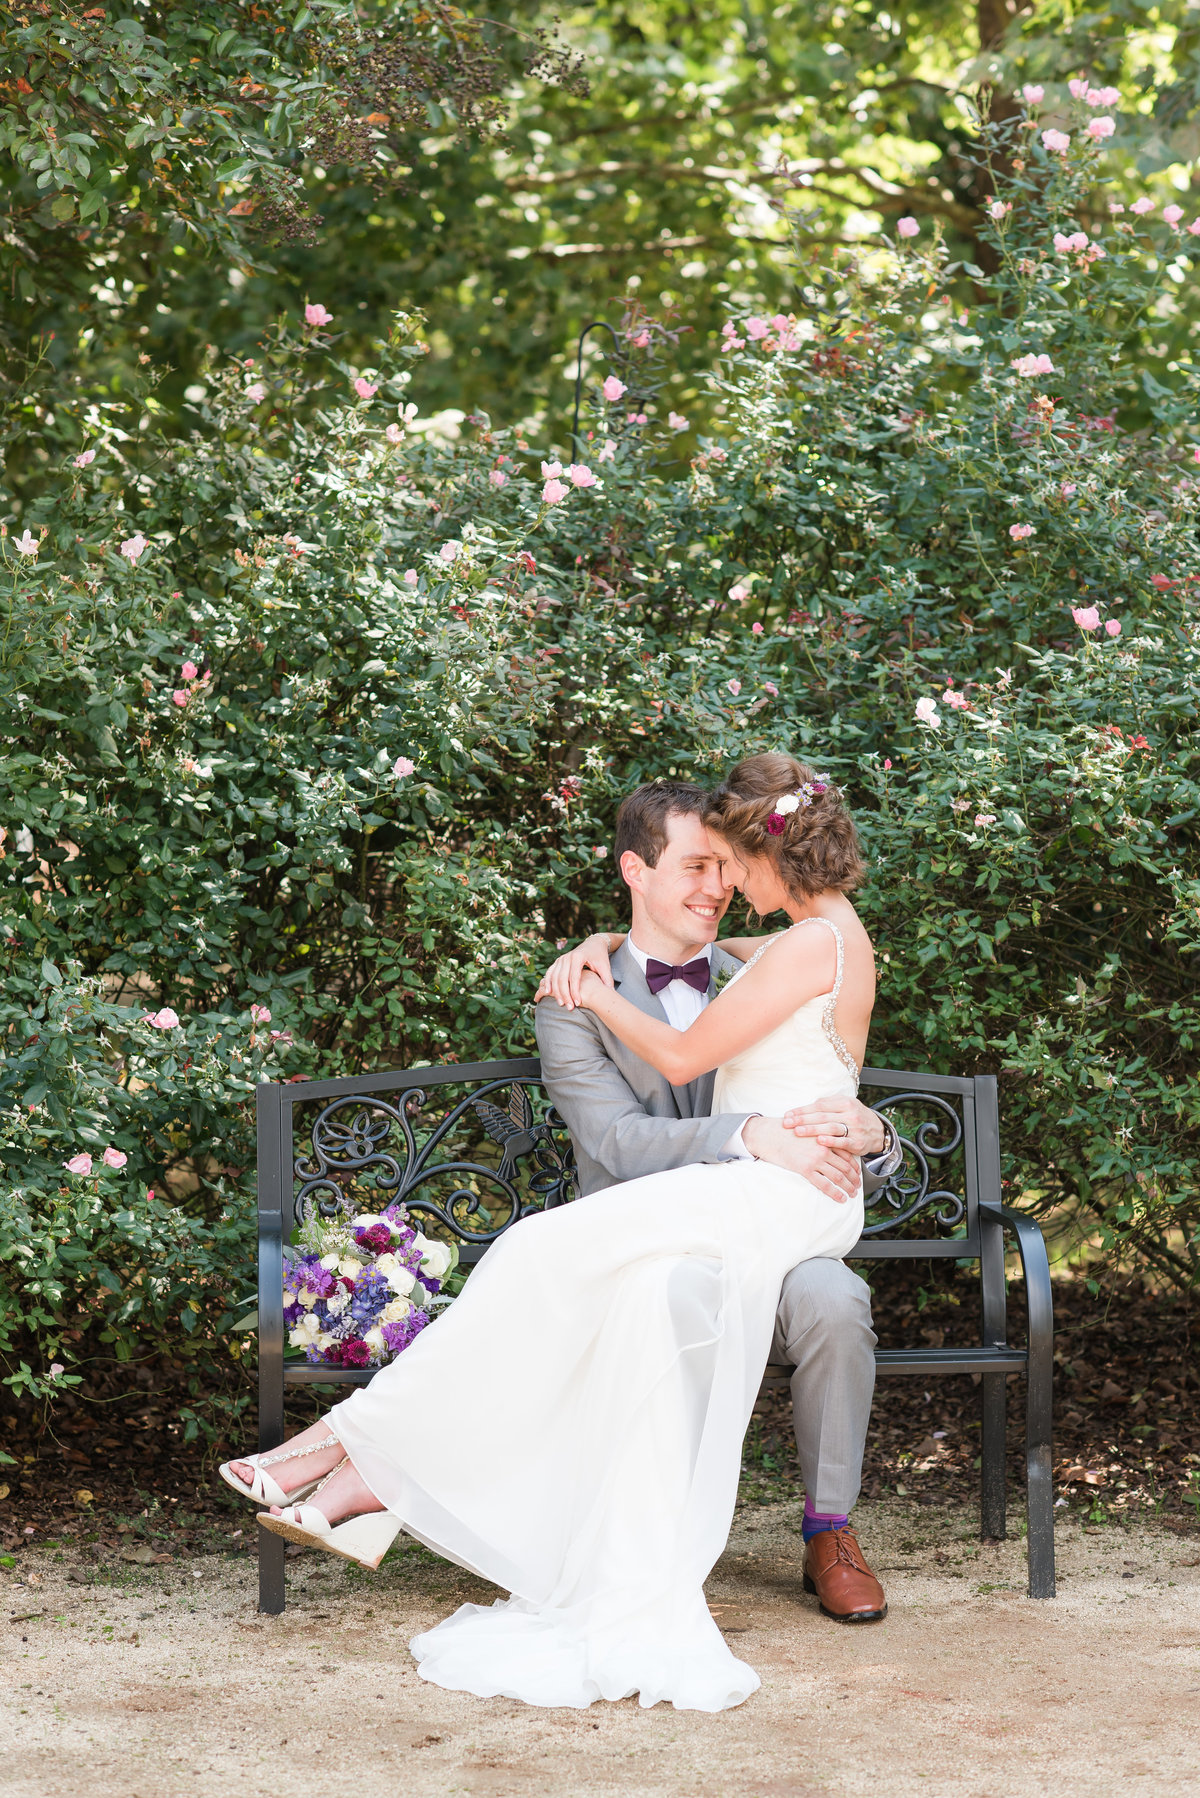 A Merry Hill Wedding, Michelle and Sara Photography, Mebane NC5